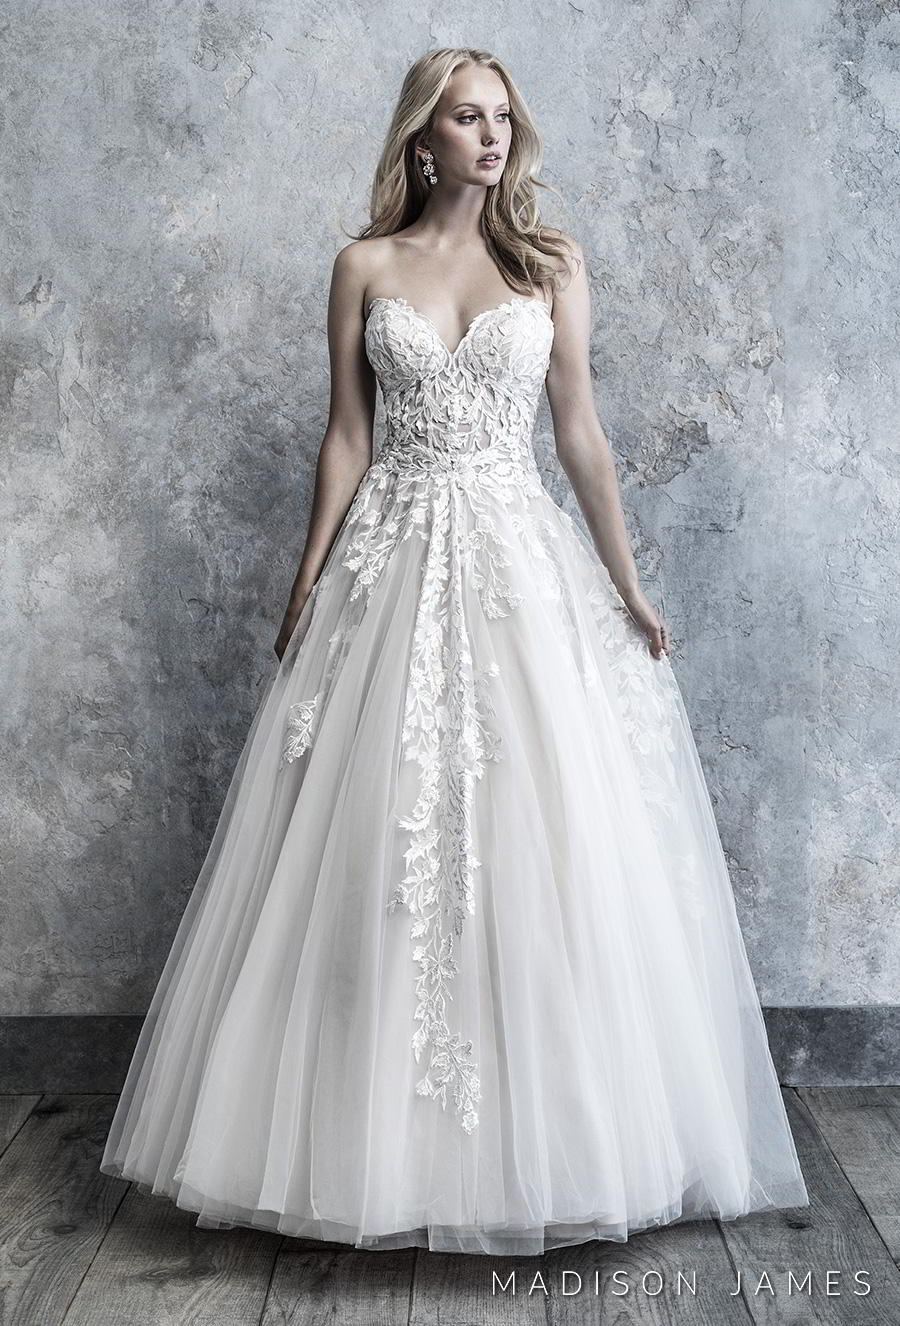 madison james 2019 bridal strapless sweetheart neckline heavily embellished bodice romantic a line wedding dress mid back chapel train (509) mv